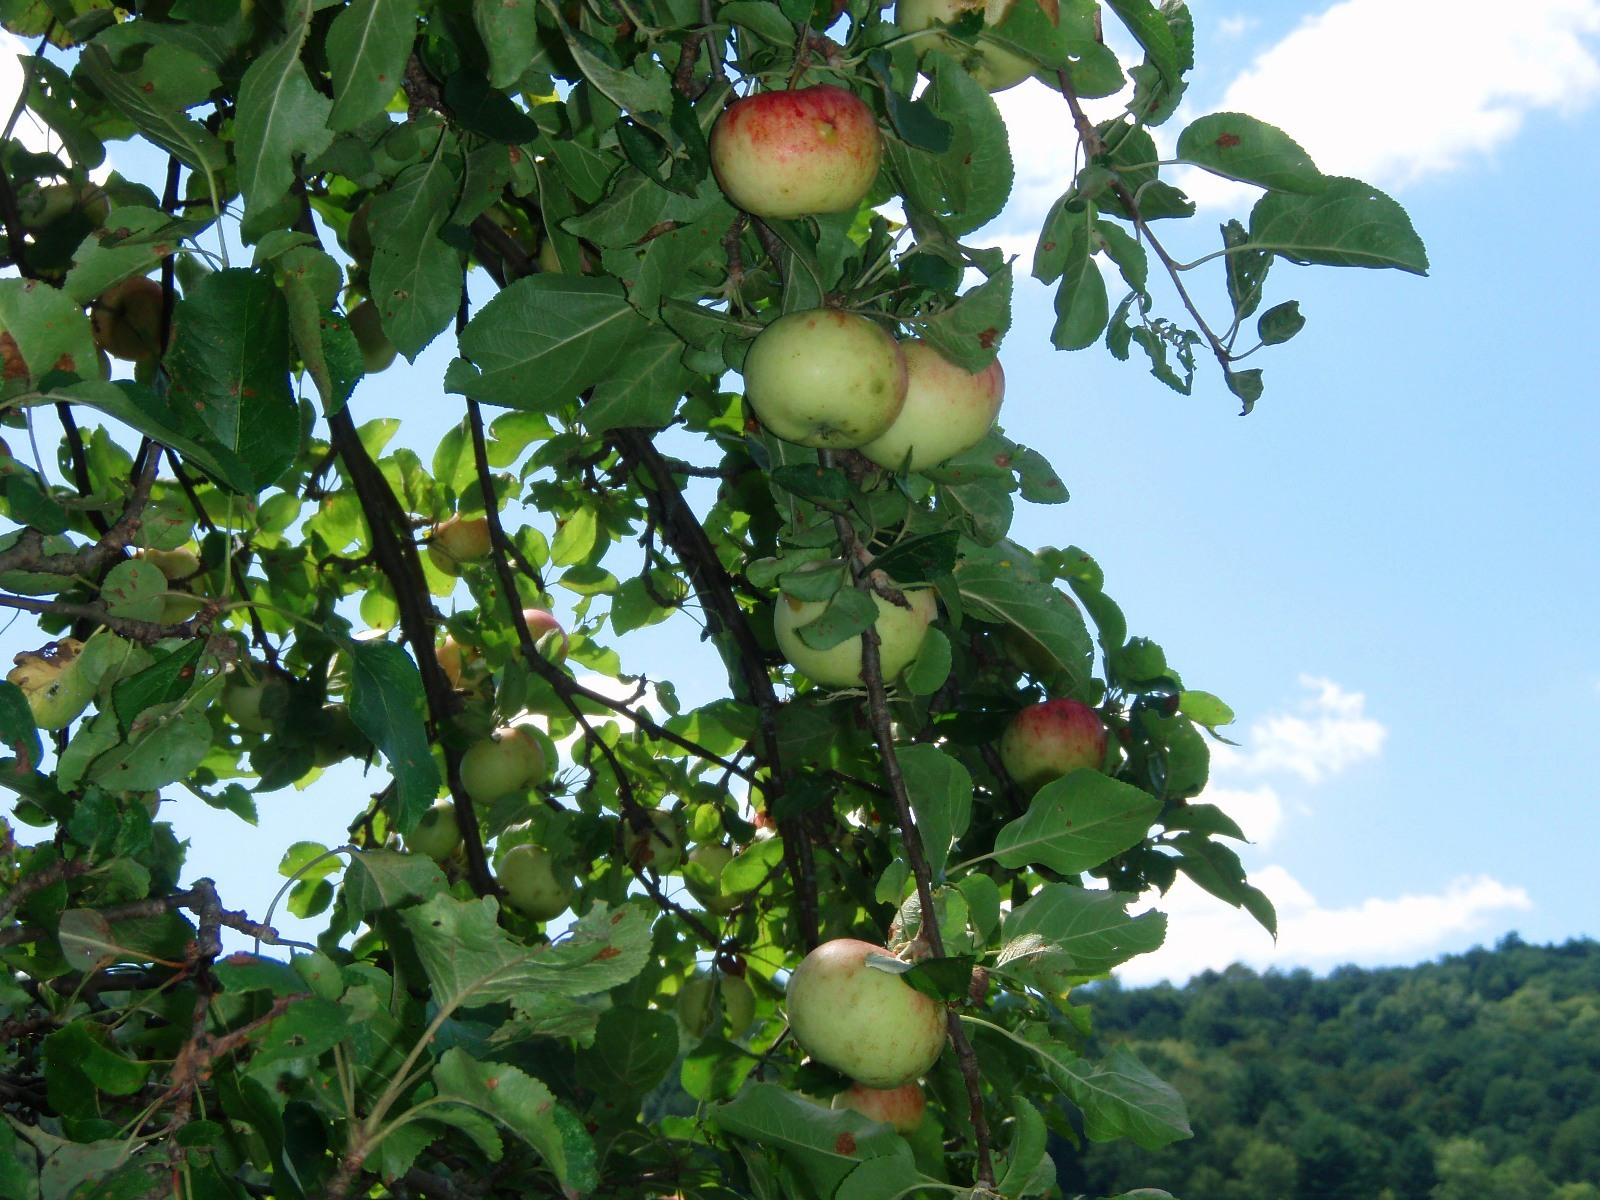 Fruit bearing trees benefit greatly when invasive species are under control